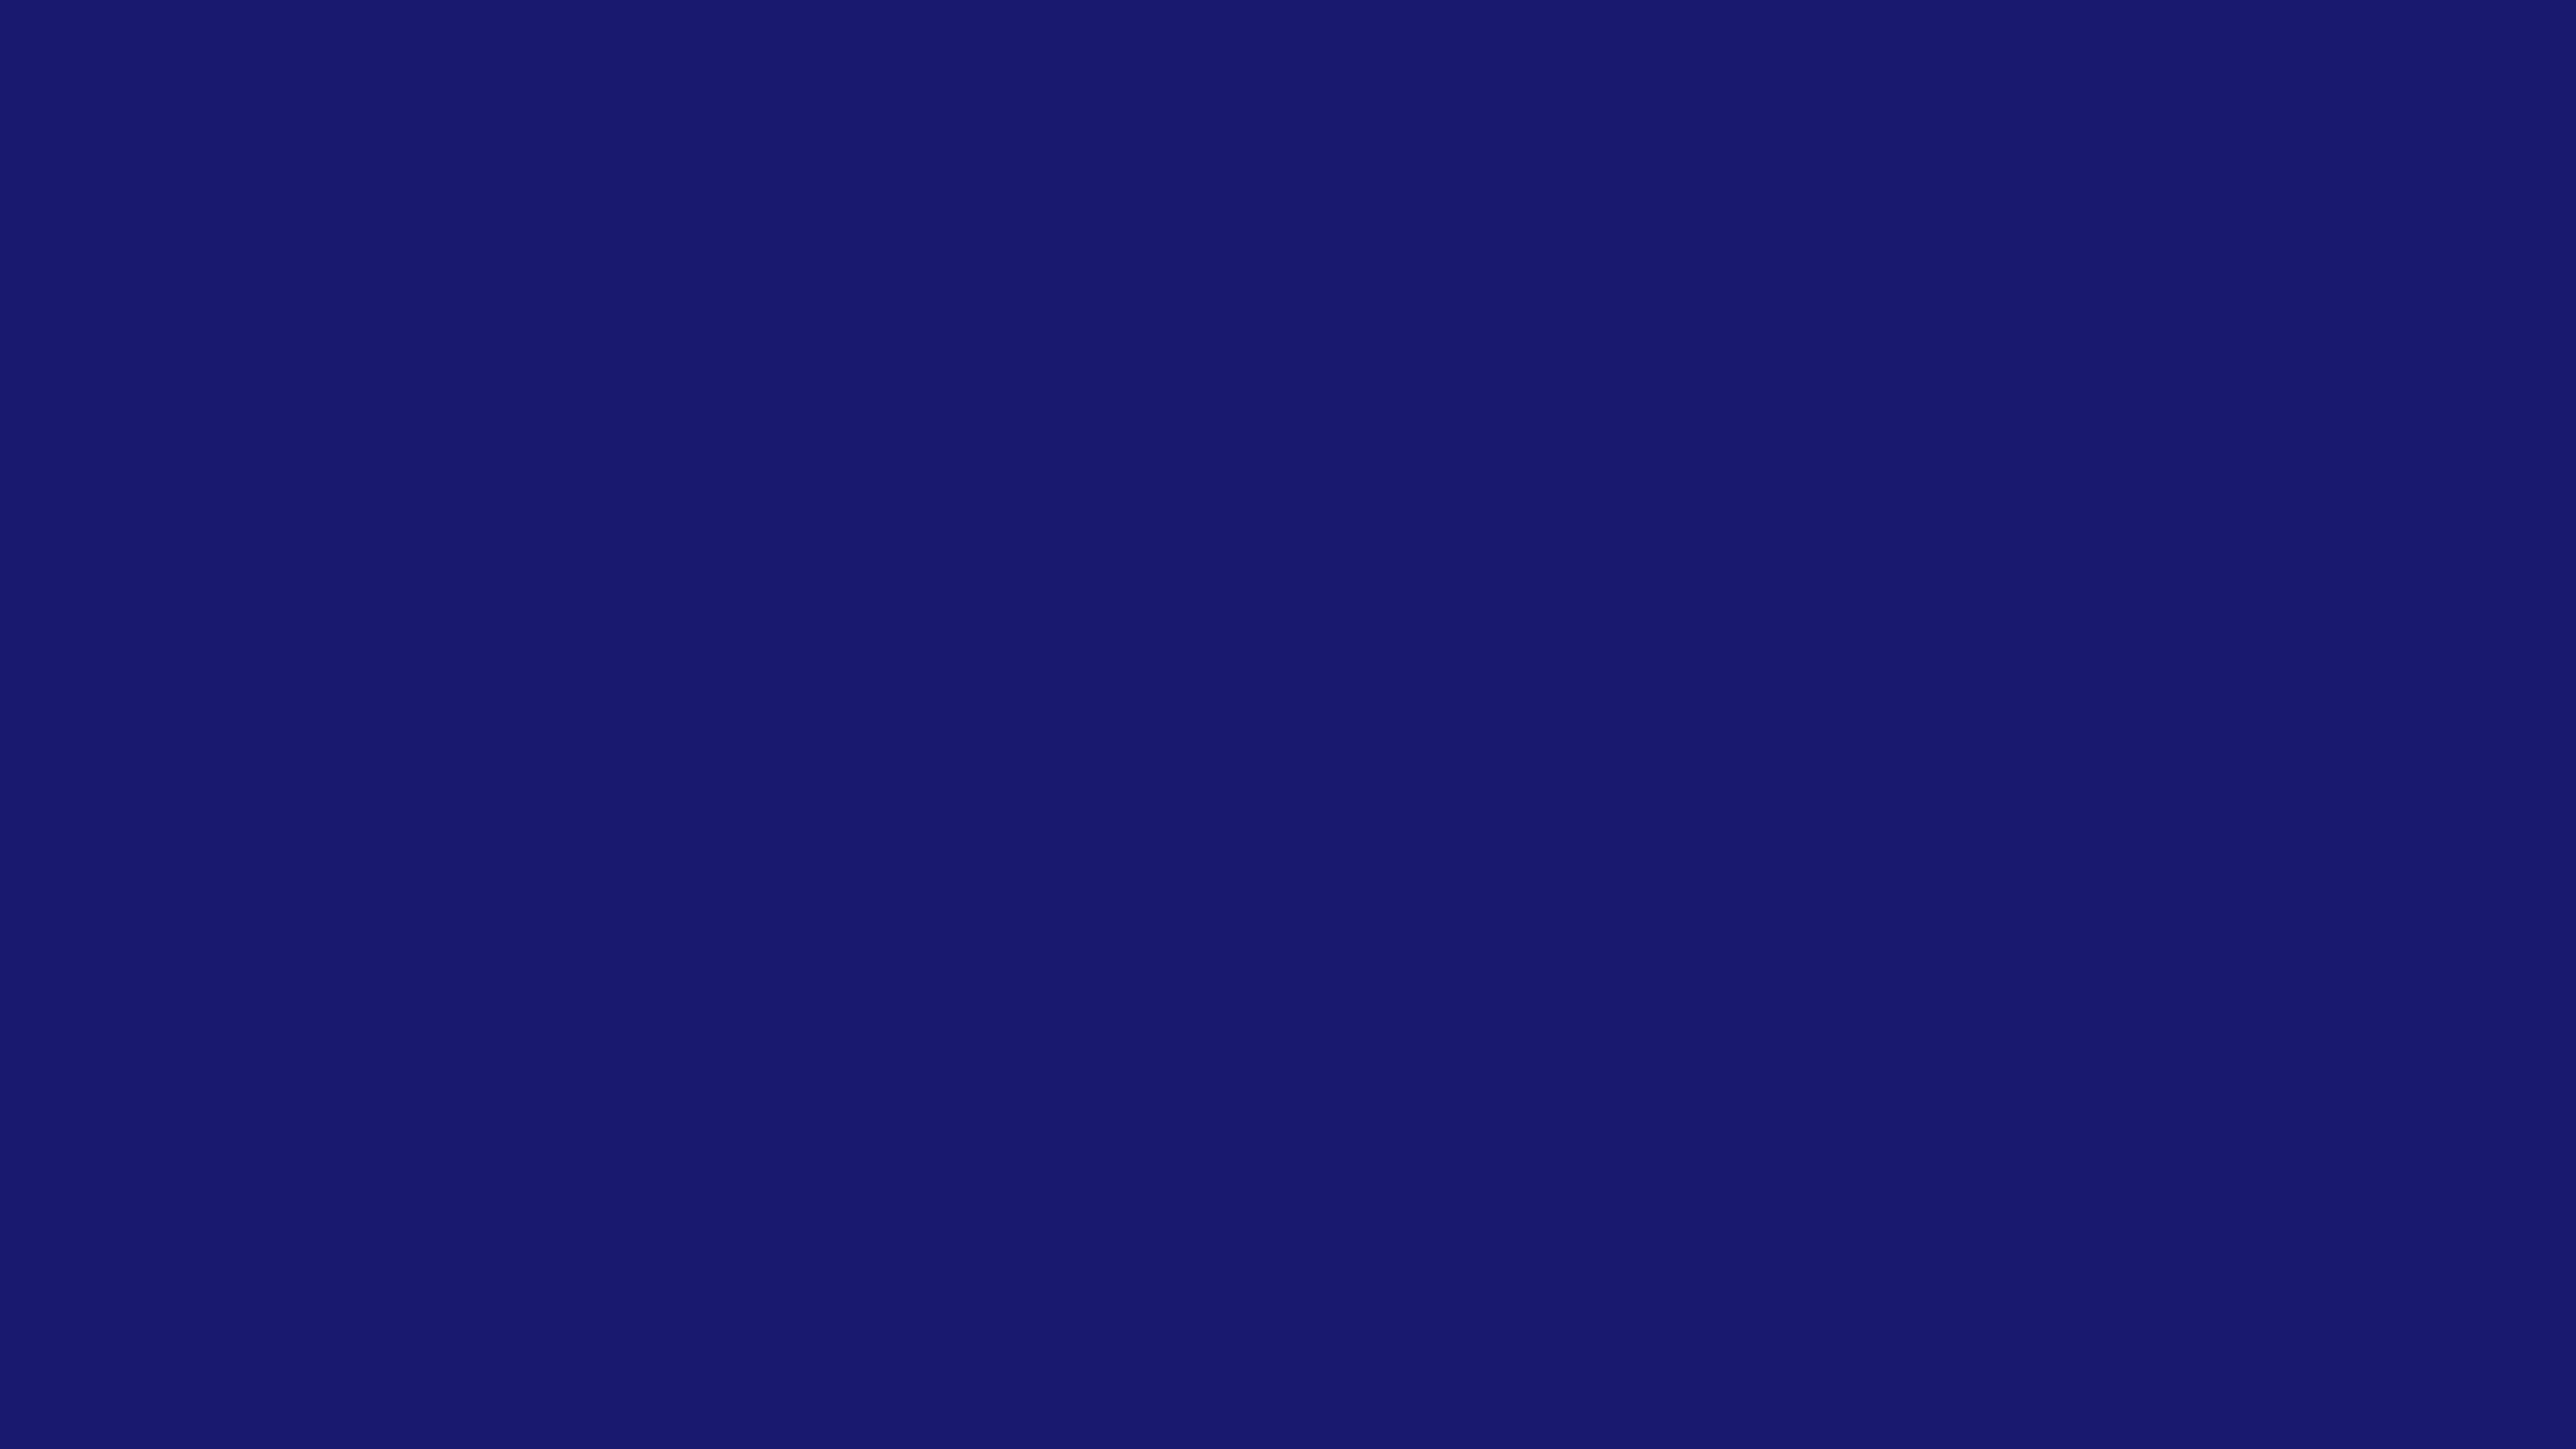 7680x4320 Midnight Blue Solid Color Background